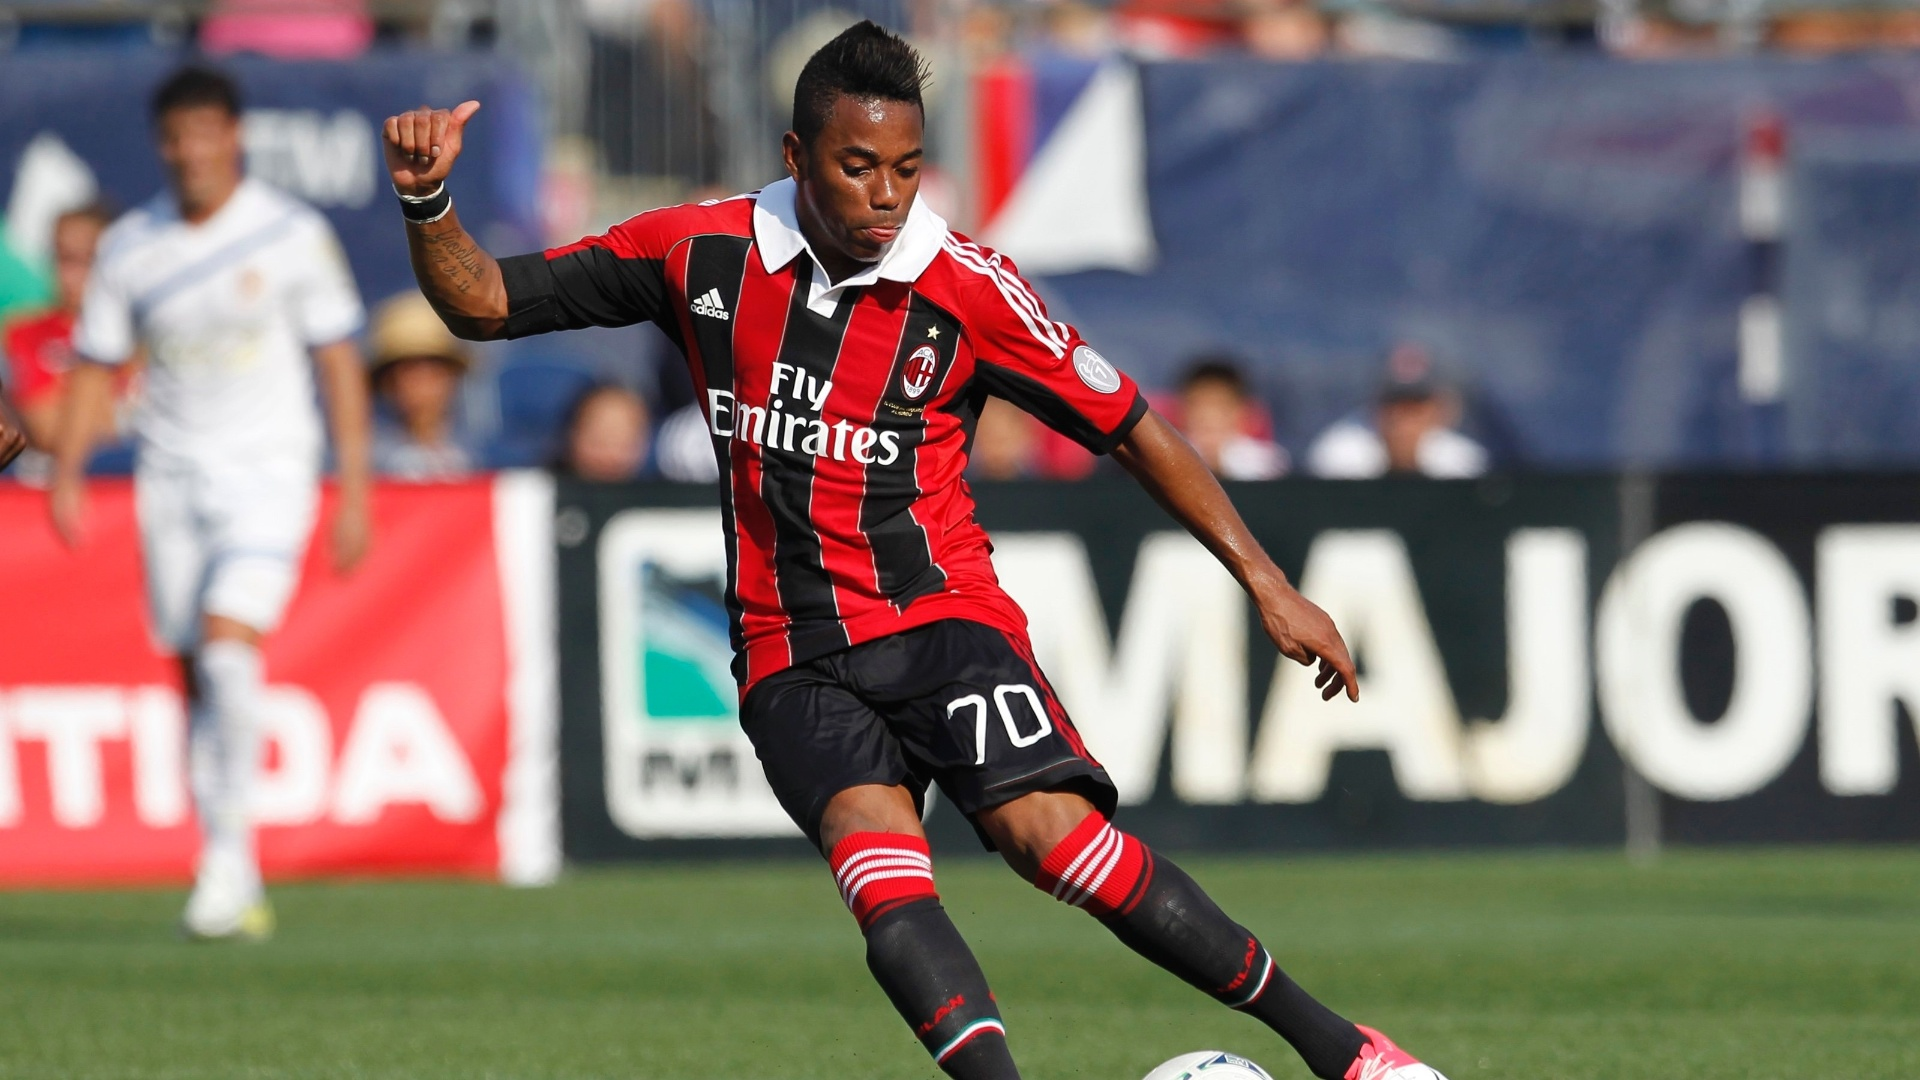 Robinho marcou um gol na vitria do Milan sobre o Olimpia, de Honduras